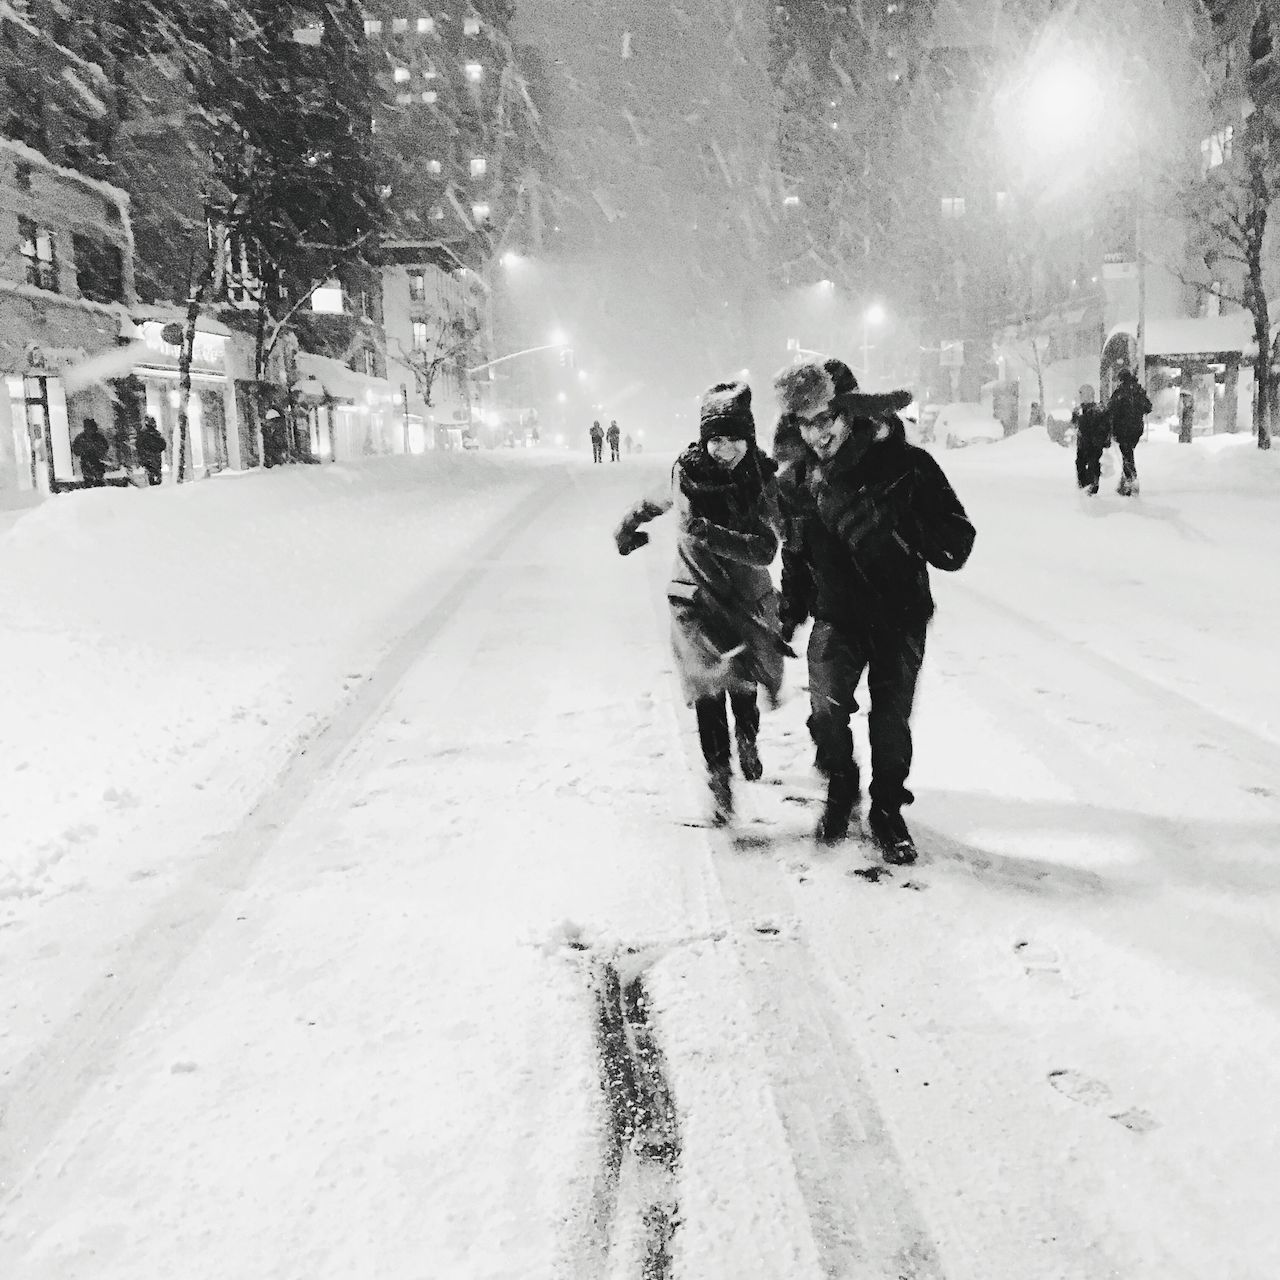 new york blizzard 2016 pictures By Paula